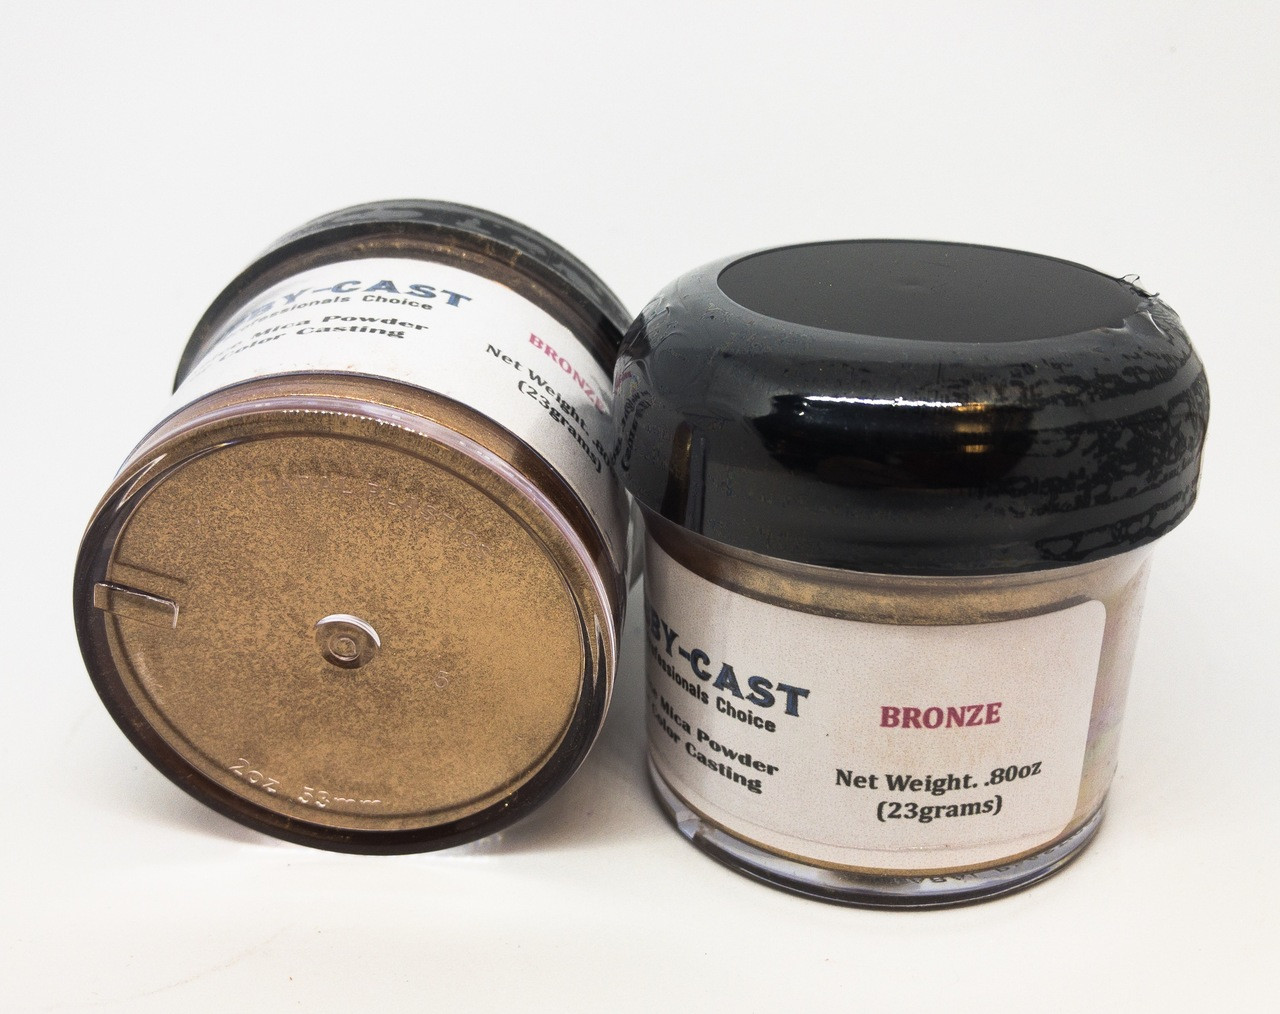 HOBBY-CAST CHOICE MICA POWDER FOR COLOR CASTING